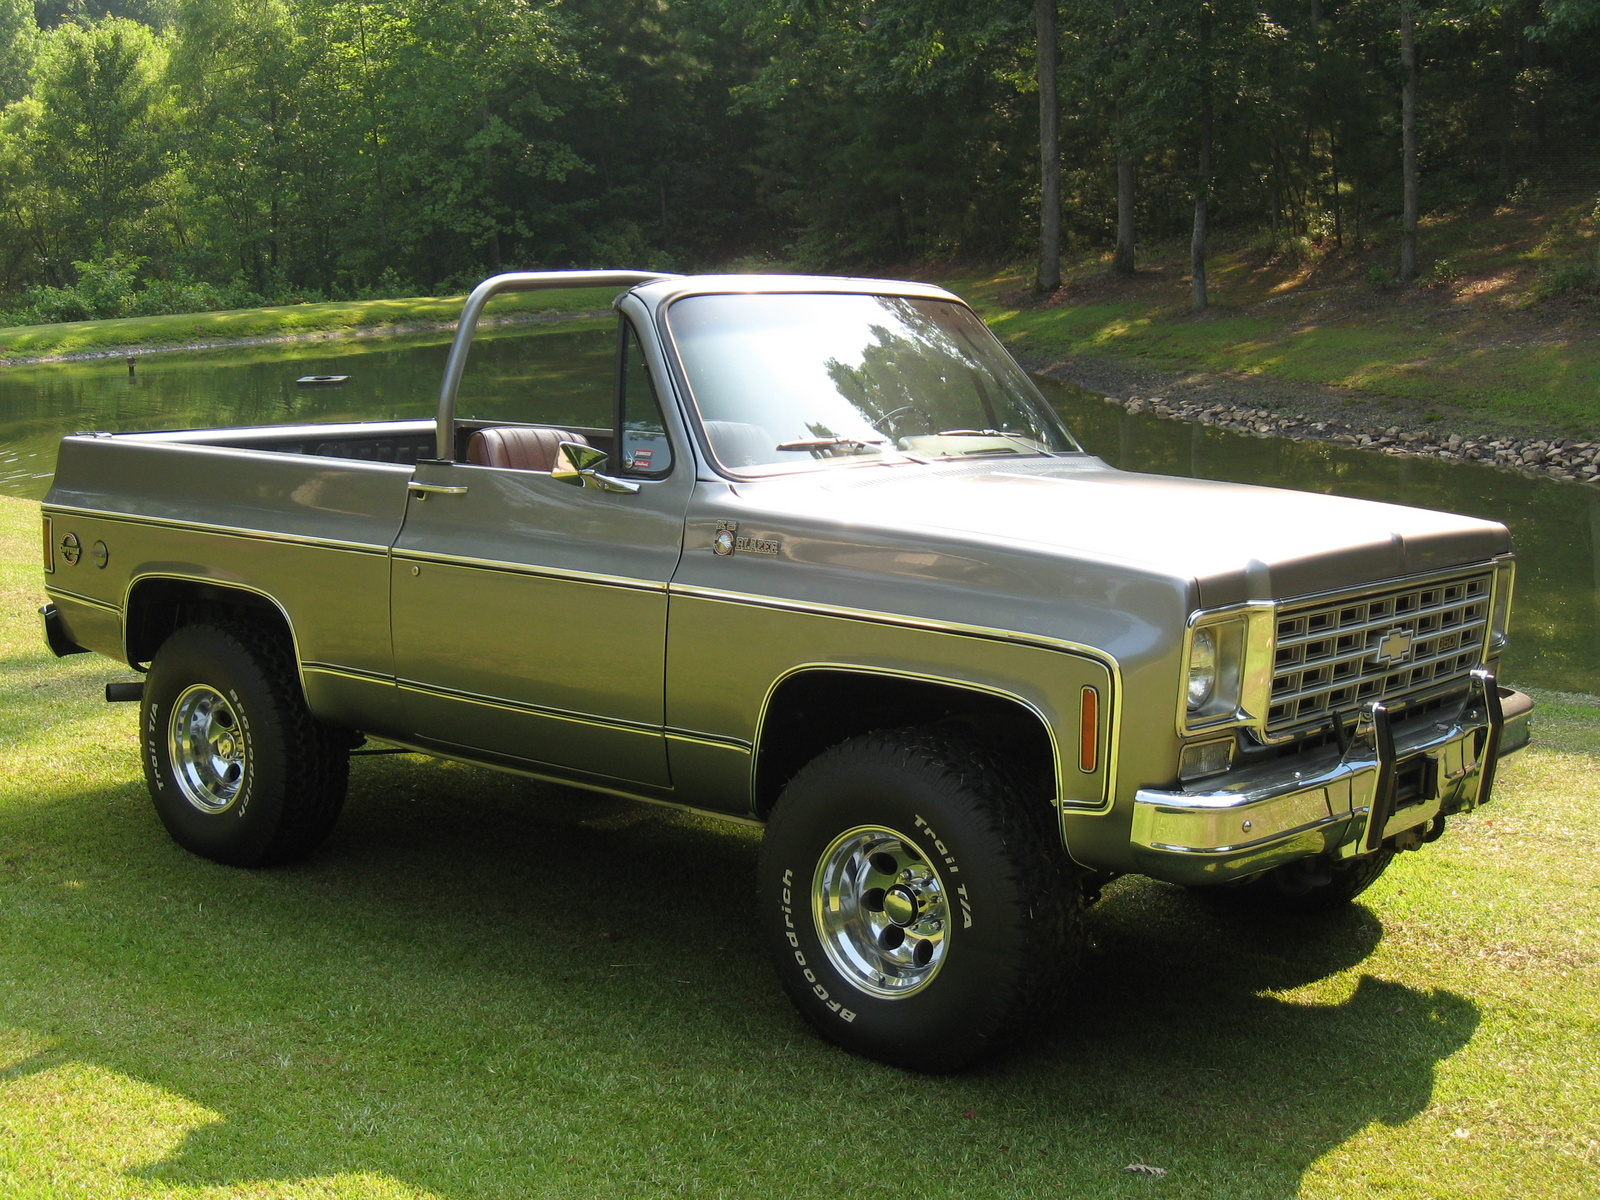 Craigslist Chevy Tahoe Convertible Blazers on Pinterest | K5 Blazer, Chevy and ...